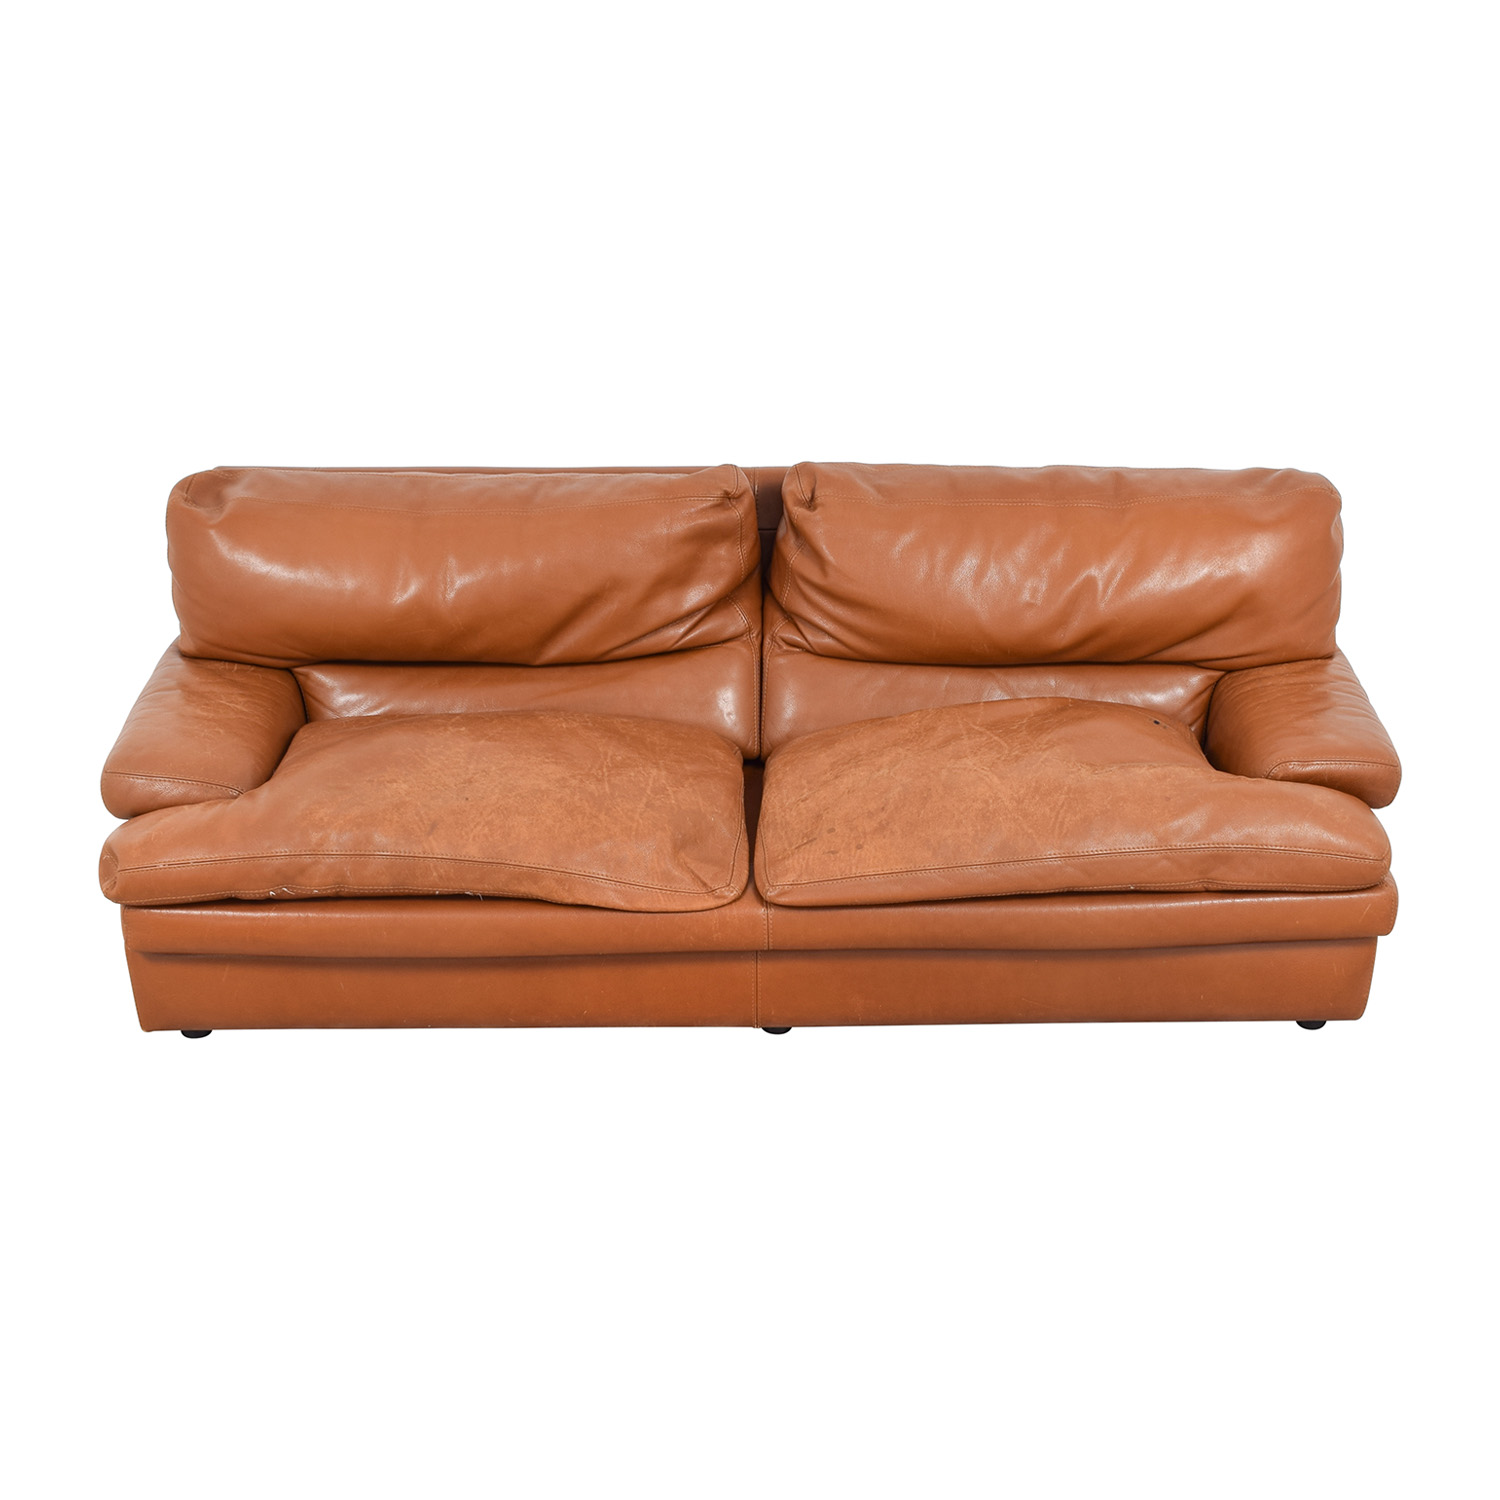 Sofa Orange Burnt Orange Leather Sofa This Burnt Orange Leather Sofa